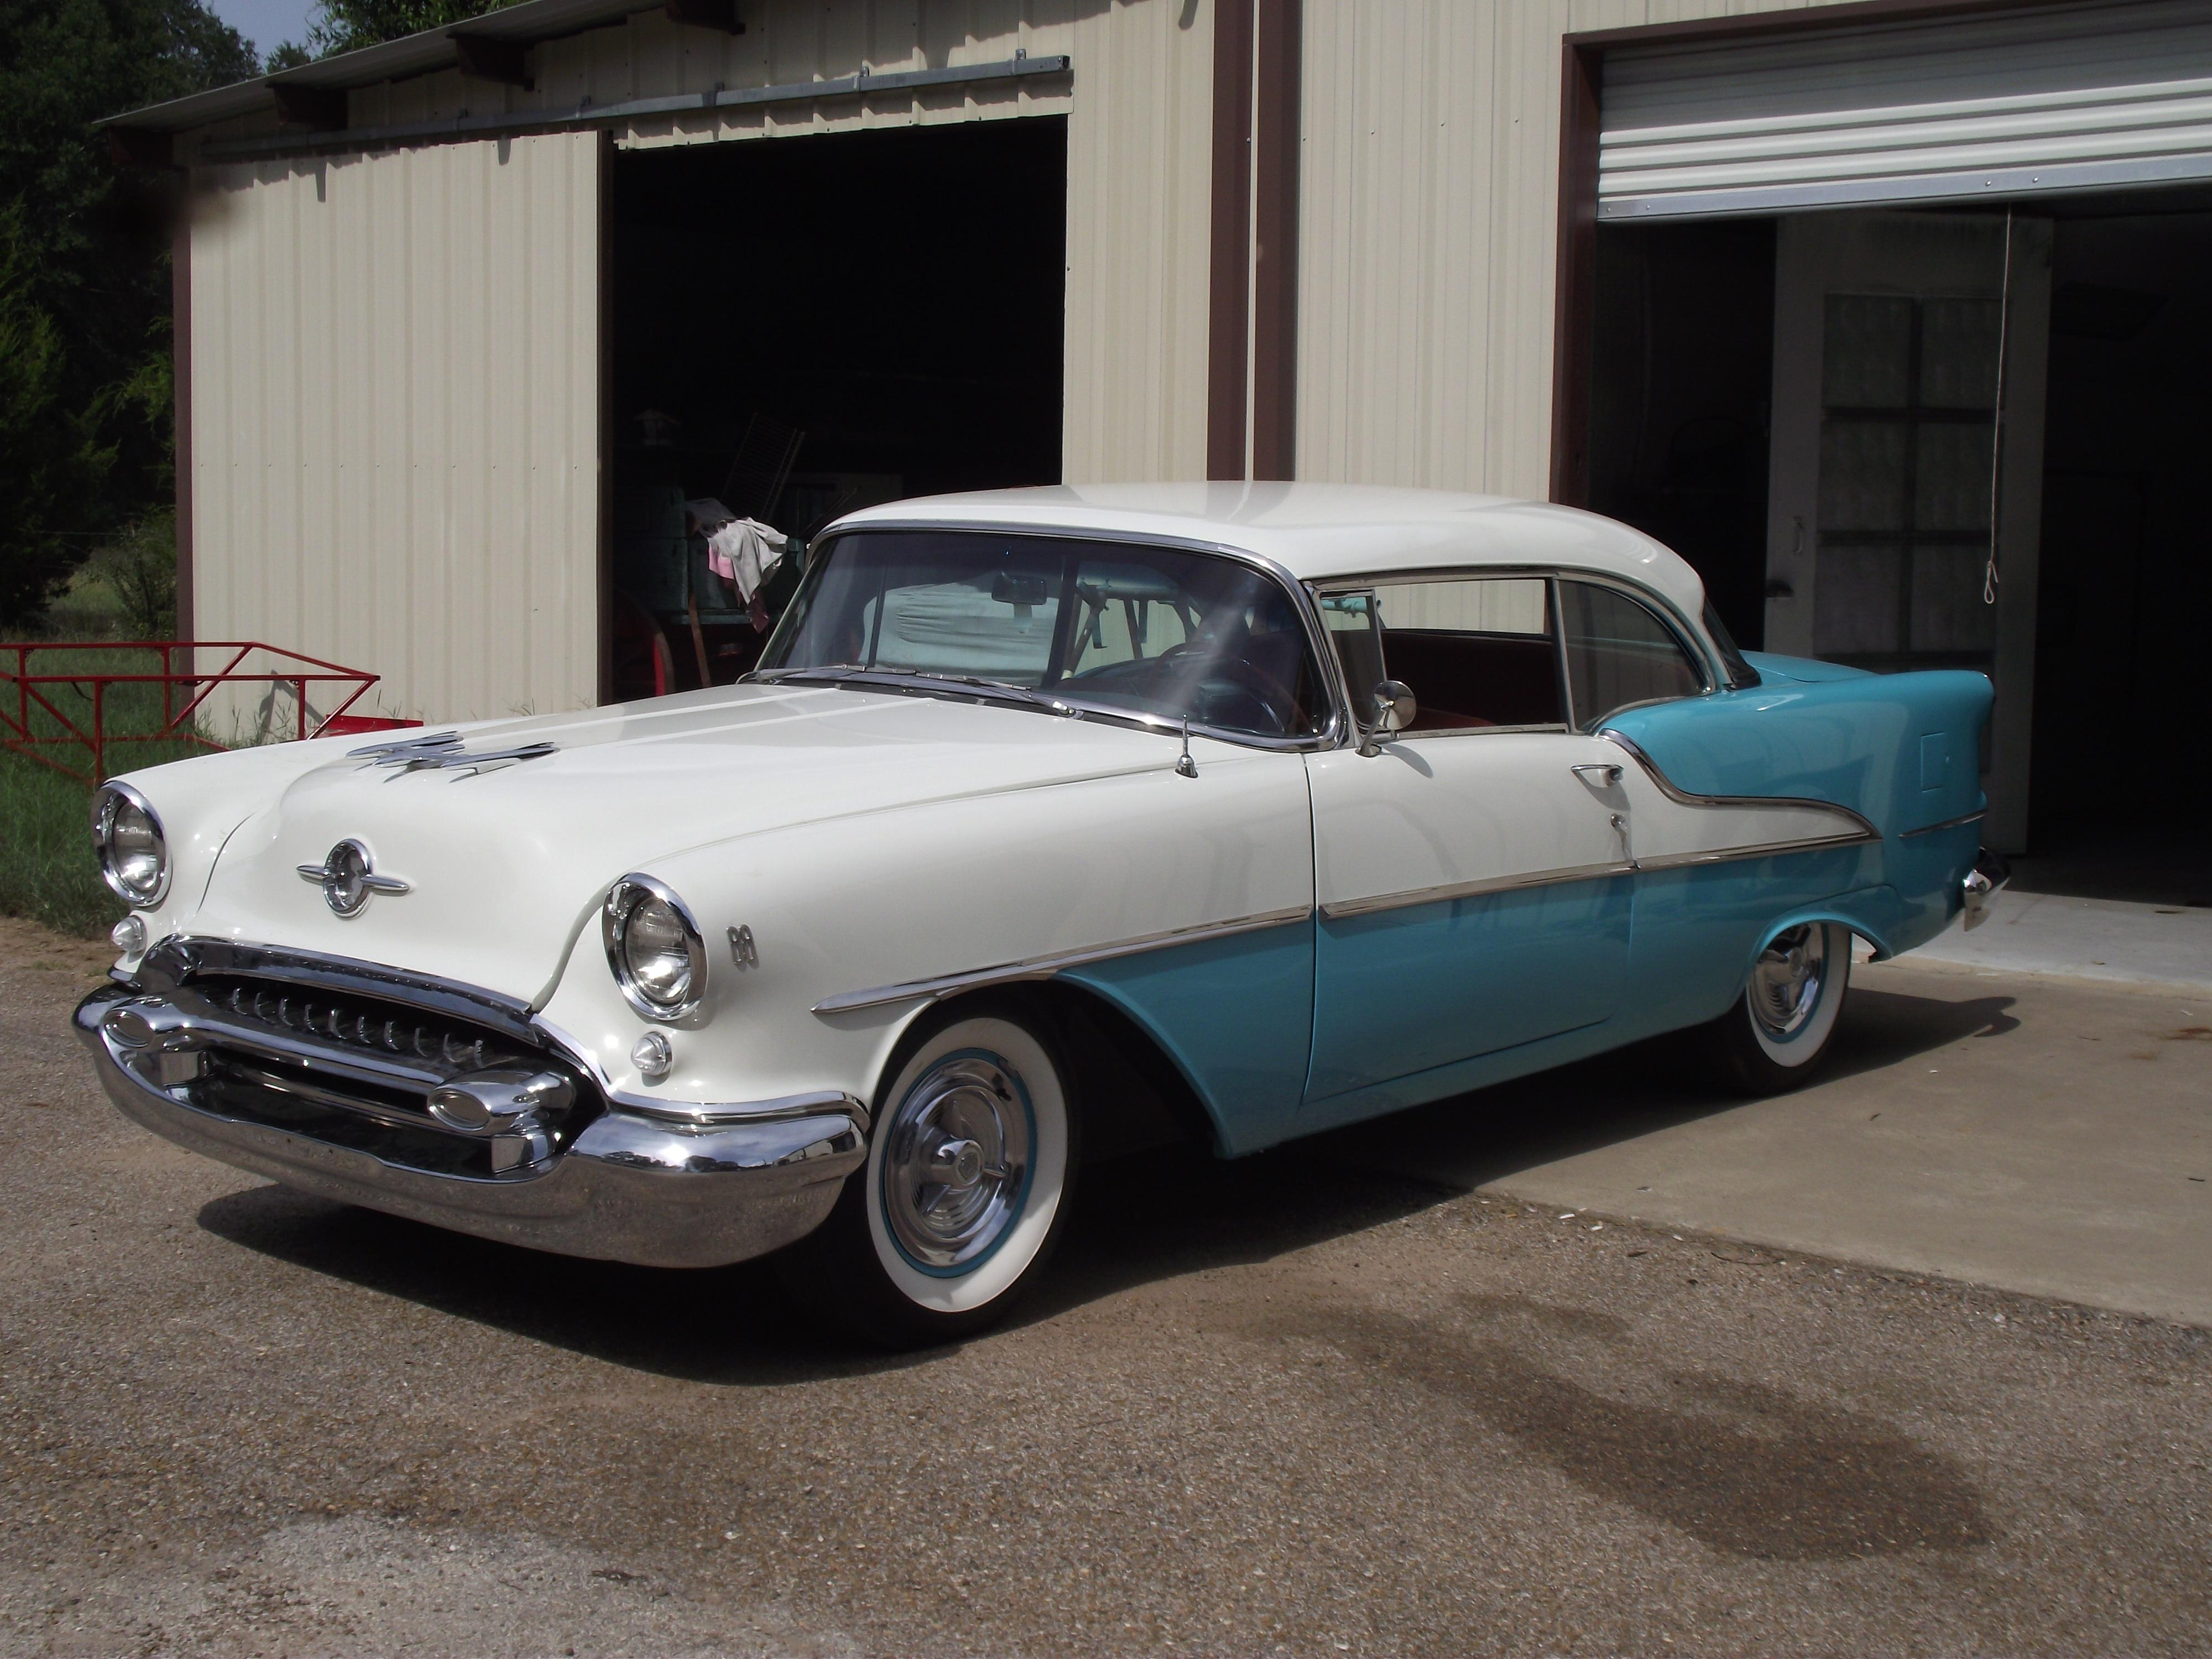 1955 Oldsmobile 88 Photos, Informations, Articles